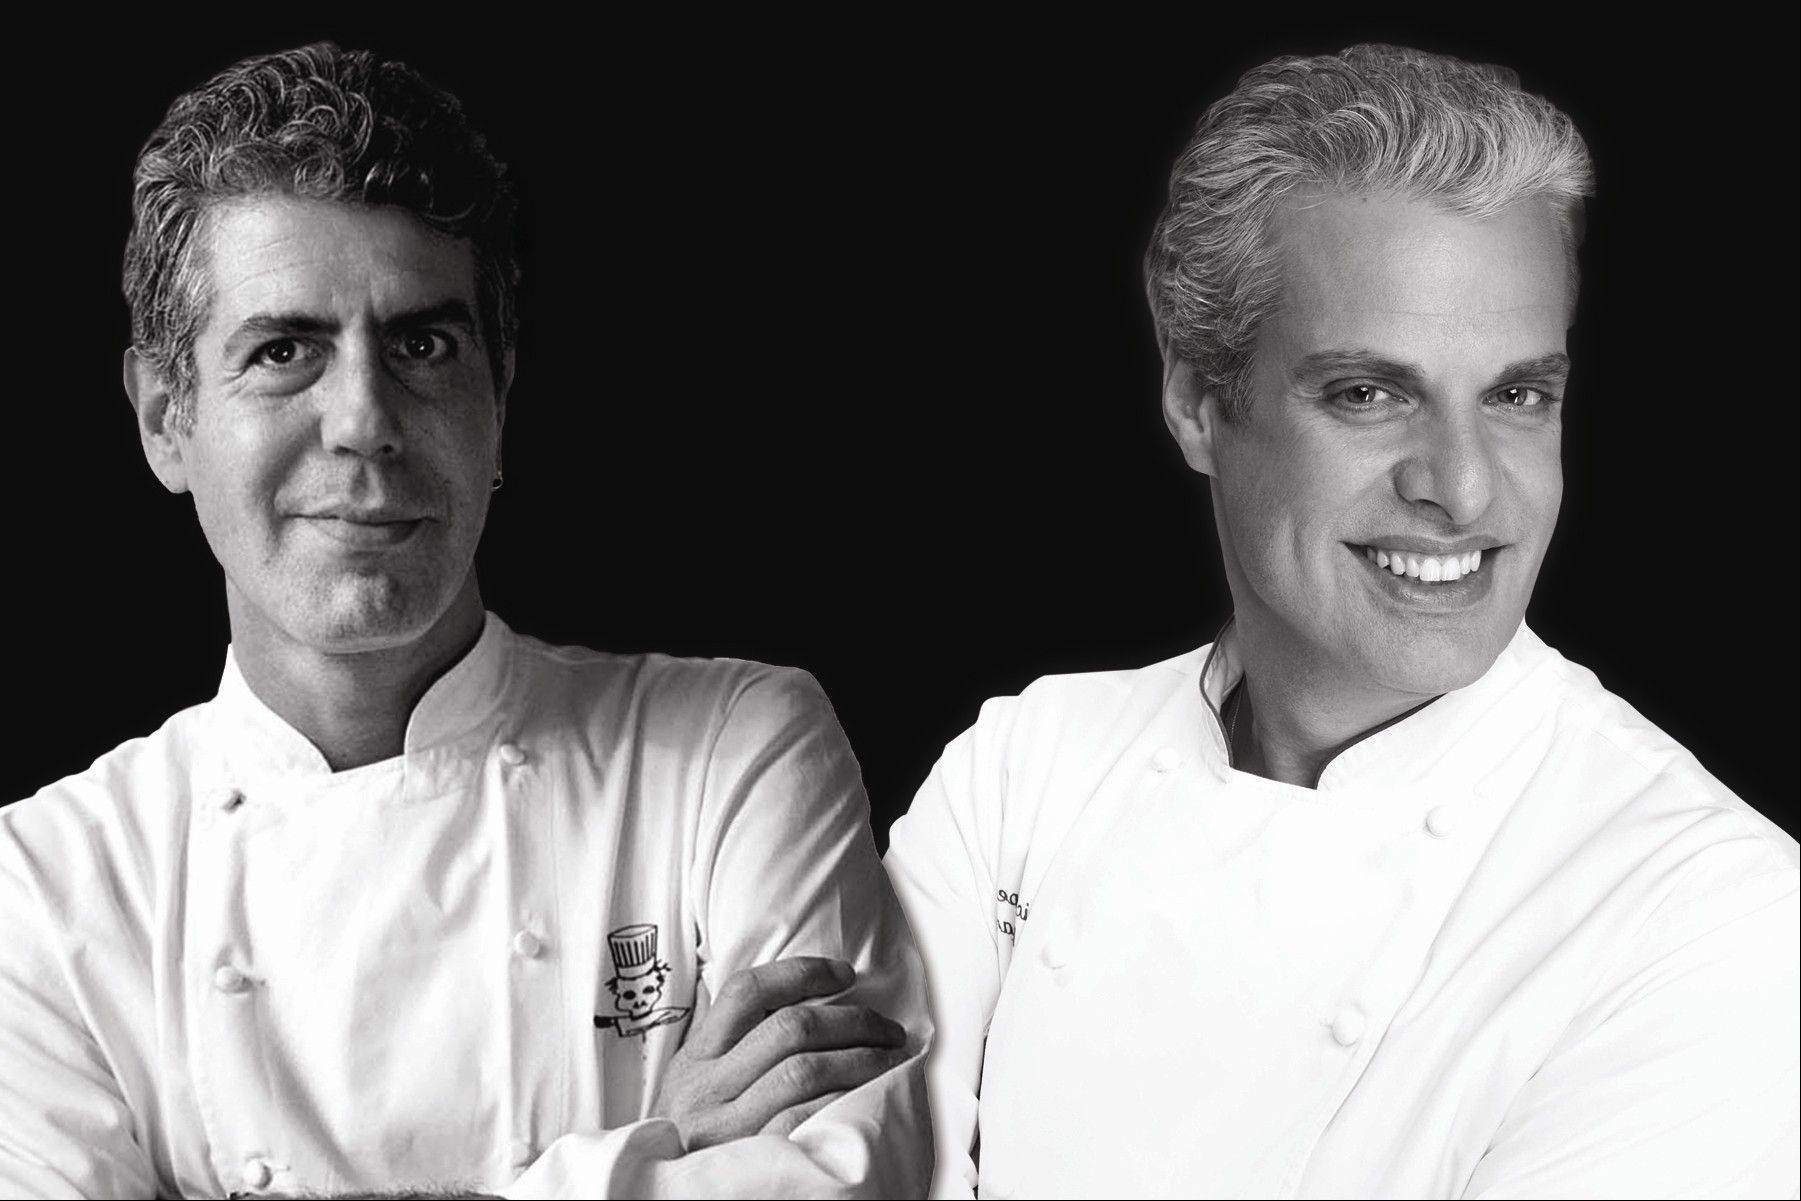 Outspoken chefs Anthony Bourdain, left, and Eric Ripert bring their Good vs. Evil stage show to Chicago in May.